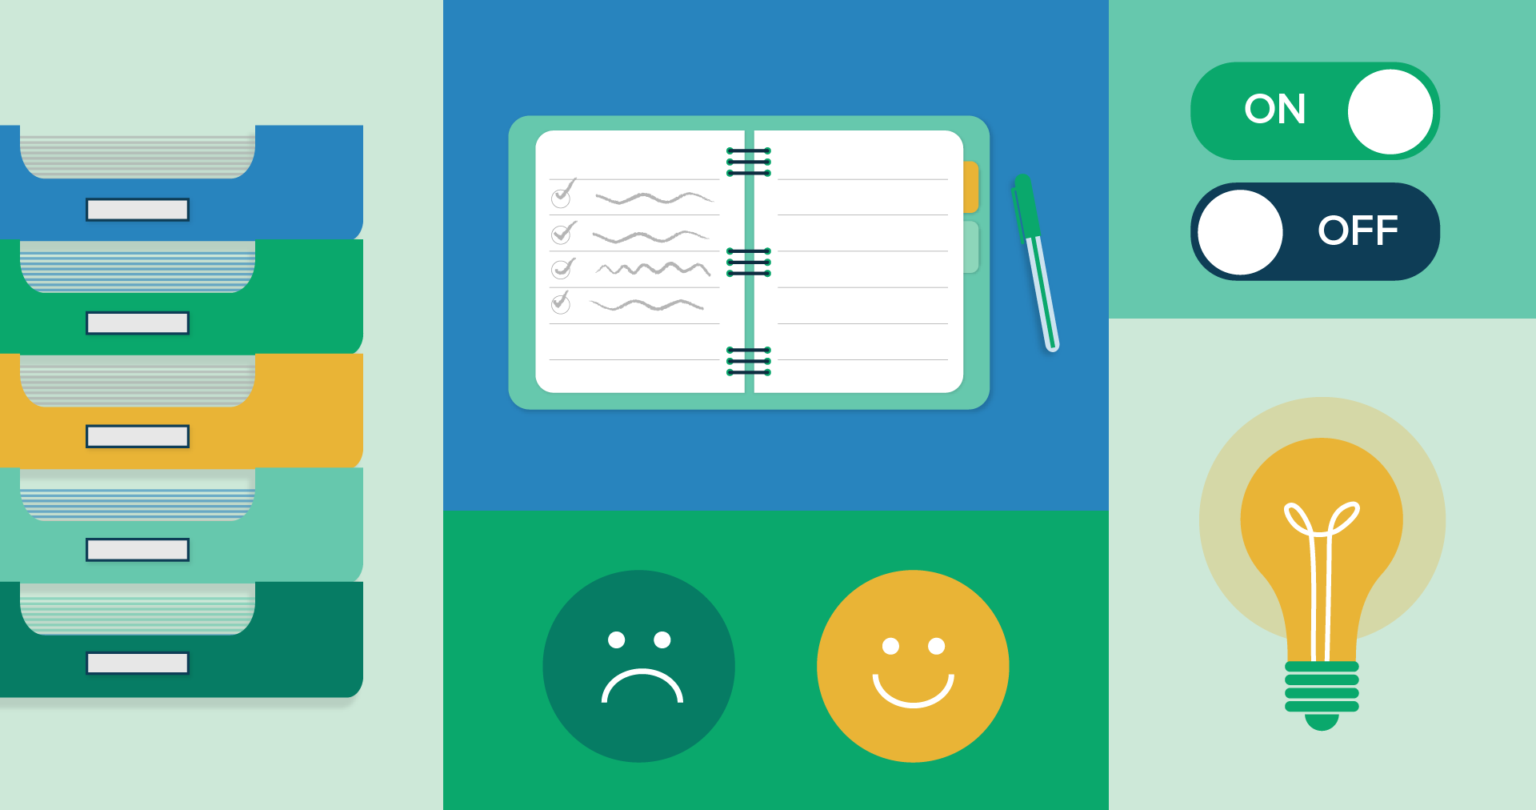 illustration of a file organizer, a notebook, a happy and sad face, a lightbulb, and two on off toggle buttons